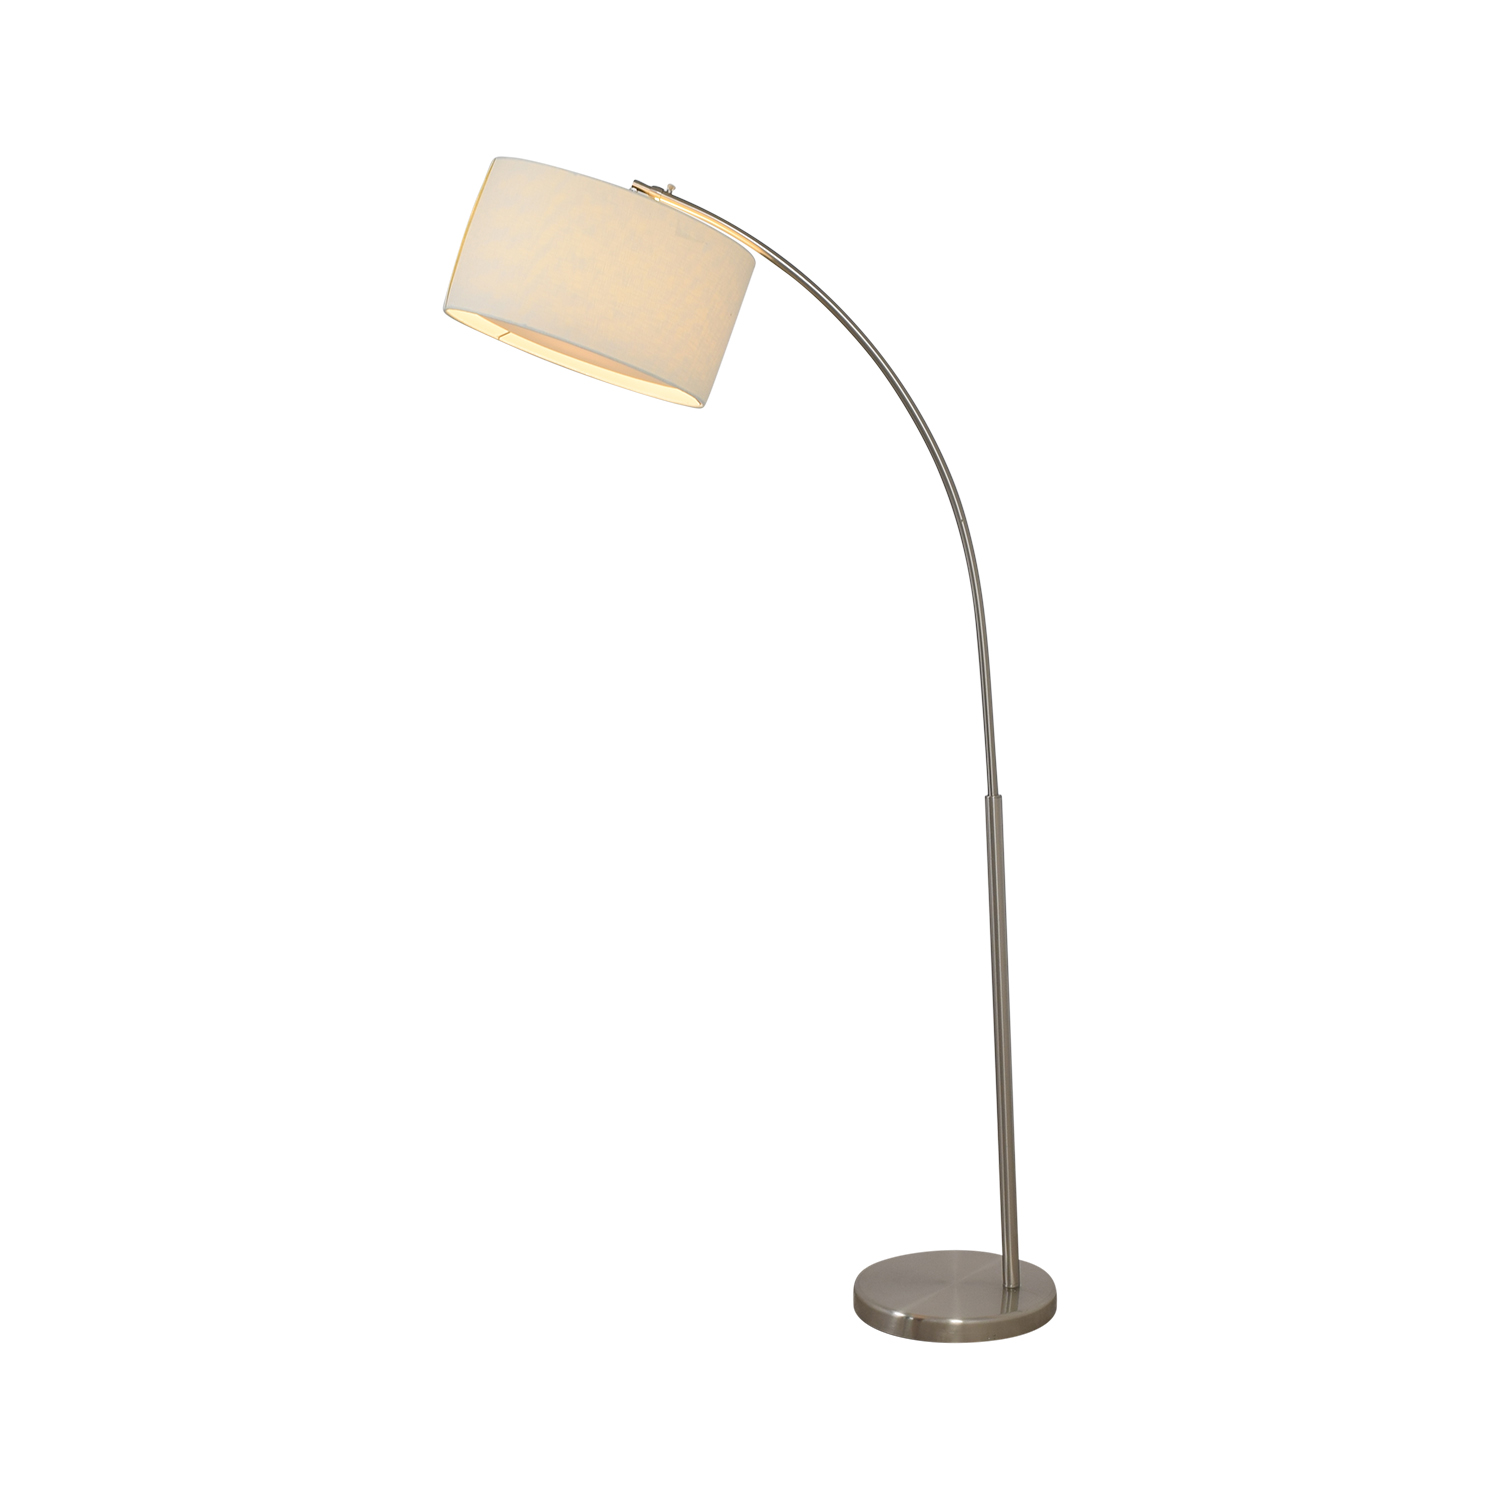 CB2 Arched Floor Lamp sale